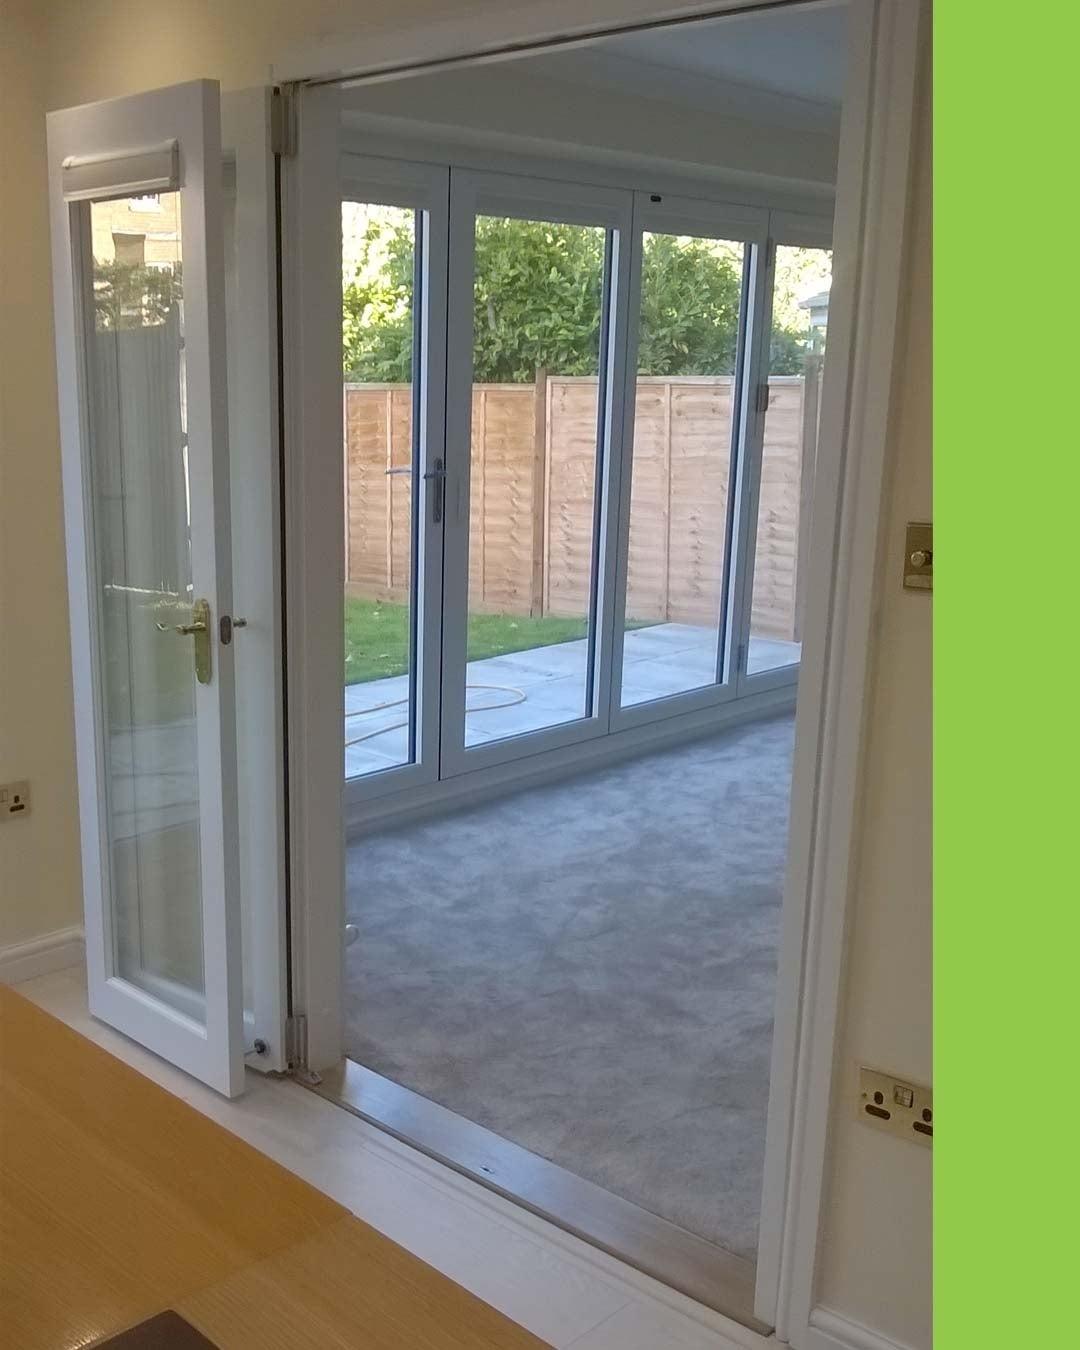 Inspire bifold doors open with a view of Supreme white aluminium external bifold doors